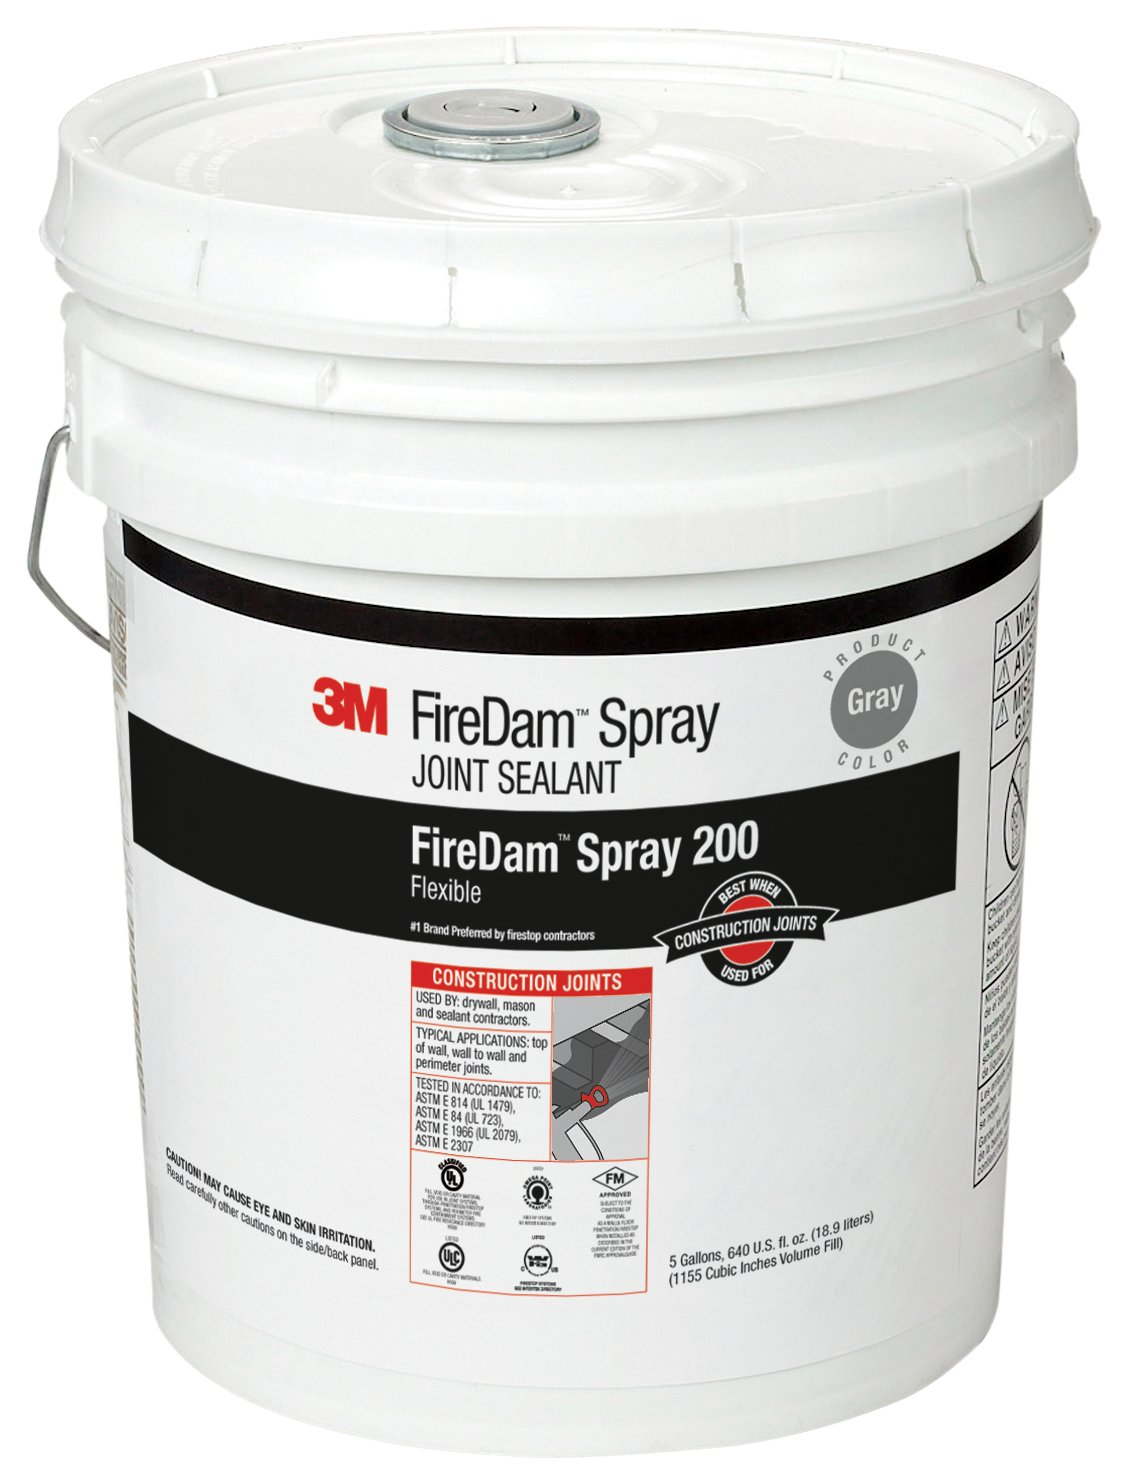 Image of Home Improvements 3M FireDam Spray 200, Gray